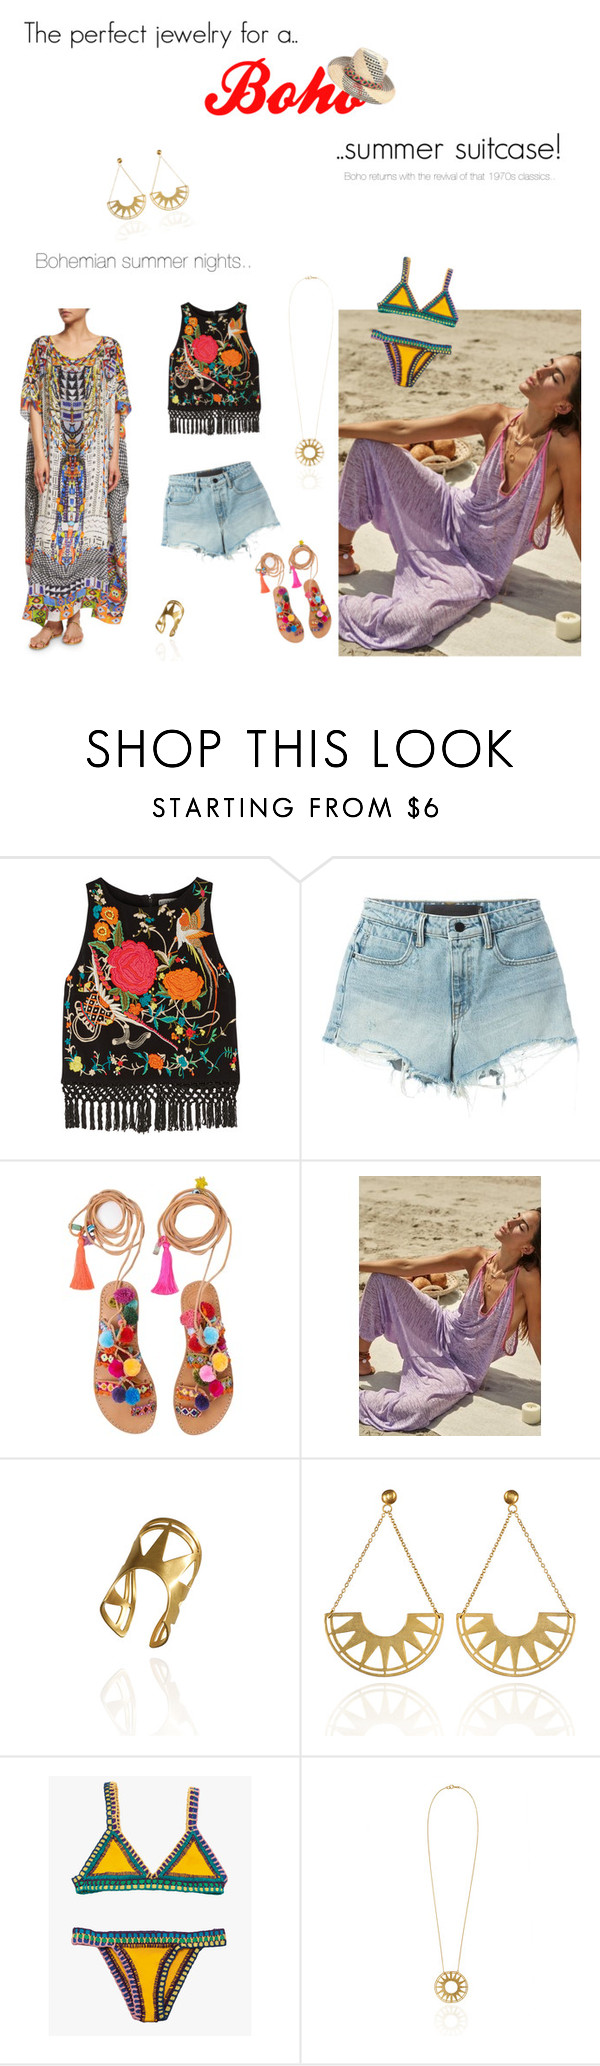 """""""The perfect jewelry for a boho summer suitcase!"""" by blingsense ❤ liked on Polyvore featuring Alice + Olivia, Alexander Wang, Muzungu Sisters, kiini, Camilla, Summer, boho and jewelry"""